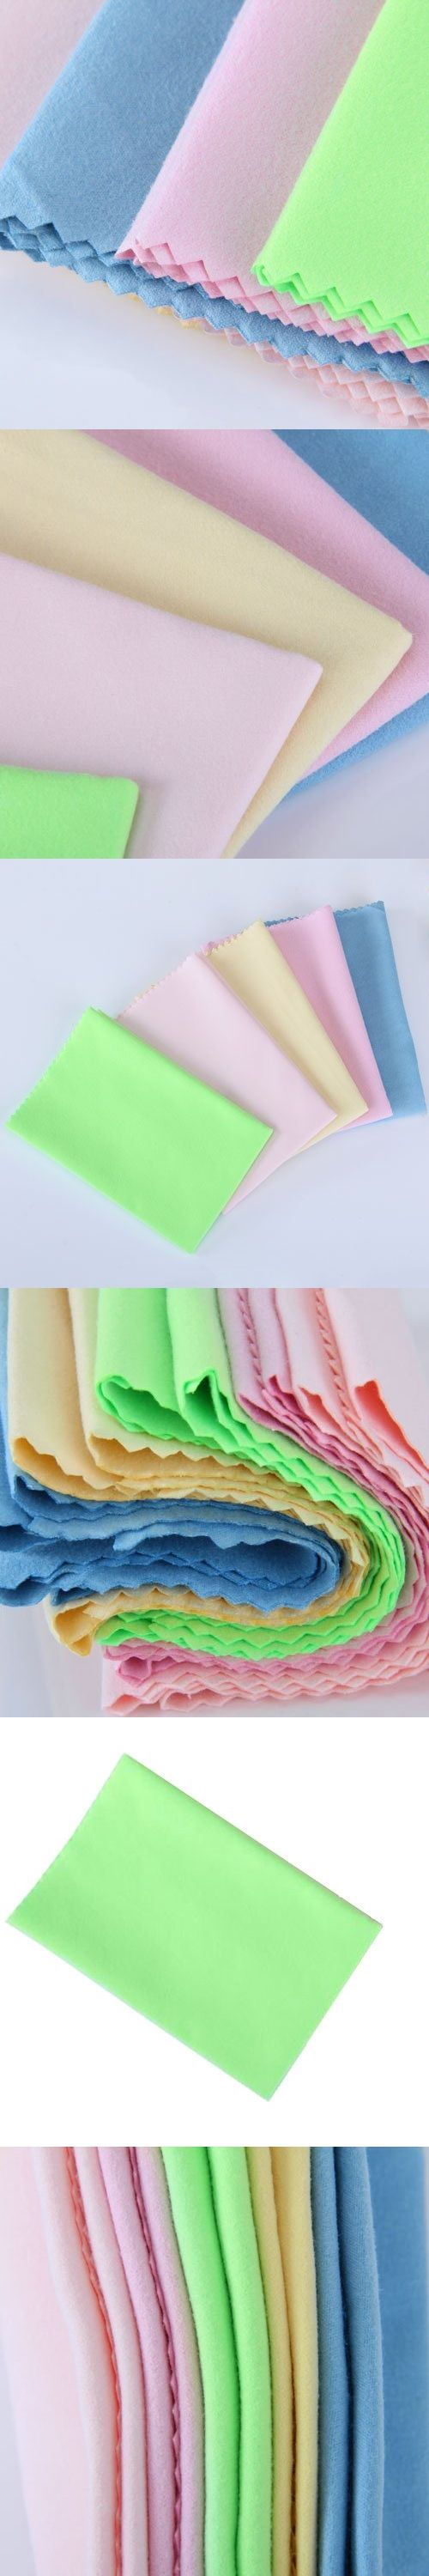 Microfibre Cleaning Cloths Camera Lens Eye/ Glasses GPS /Computer Clean Wipe Clothes Cleaner Random Color